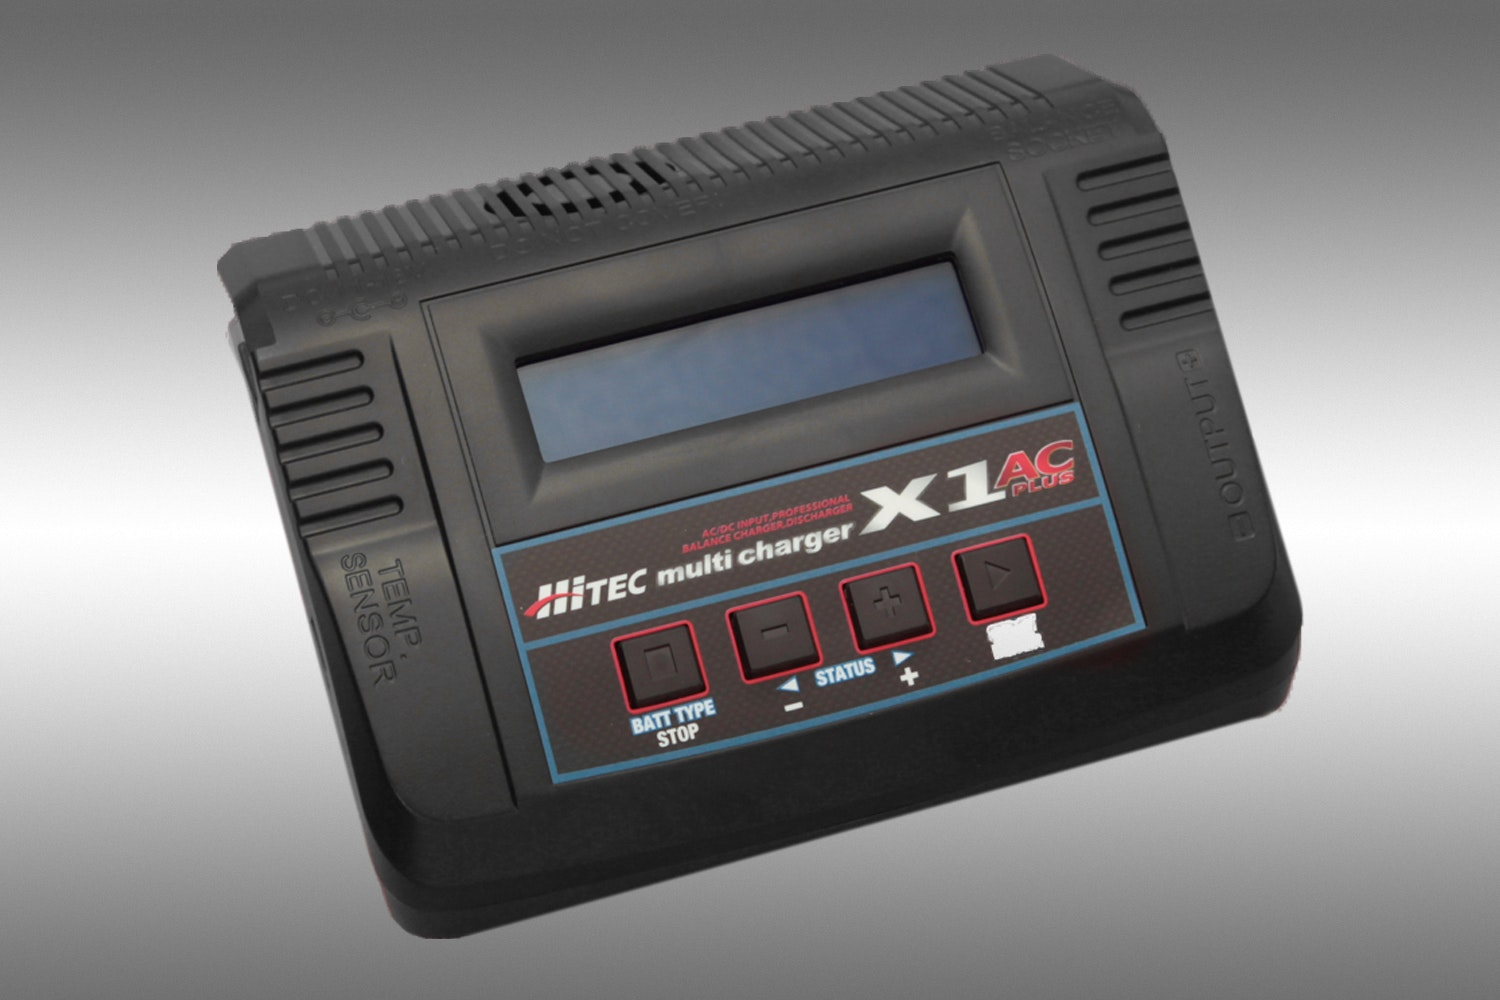 Hitec X1 AC/DC Charger